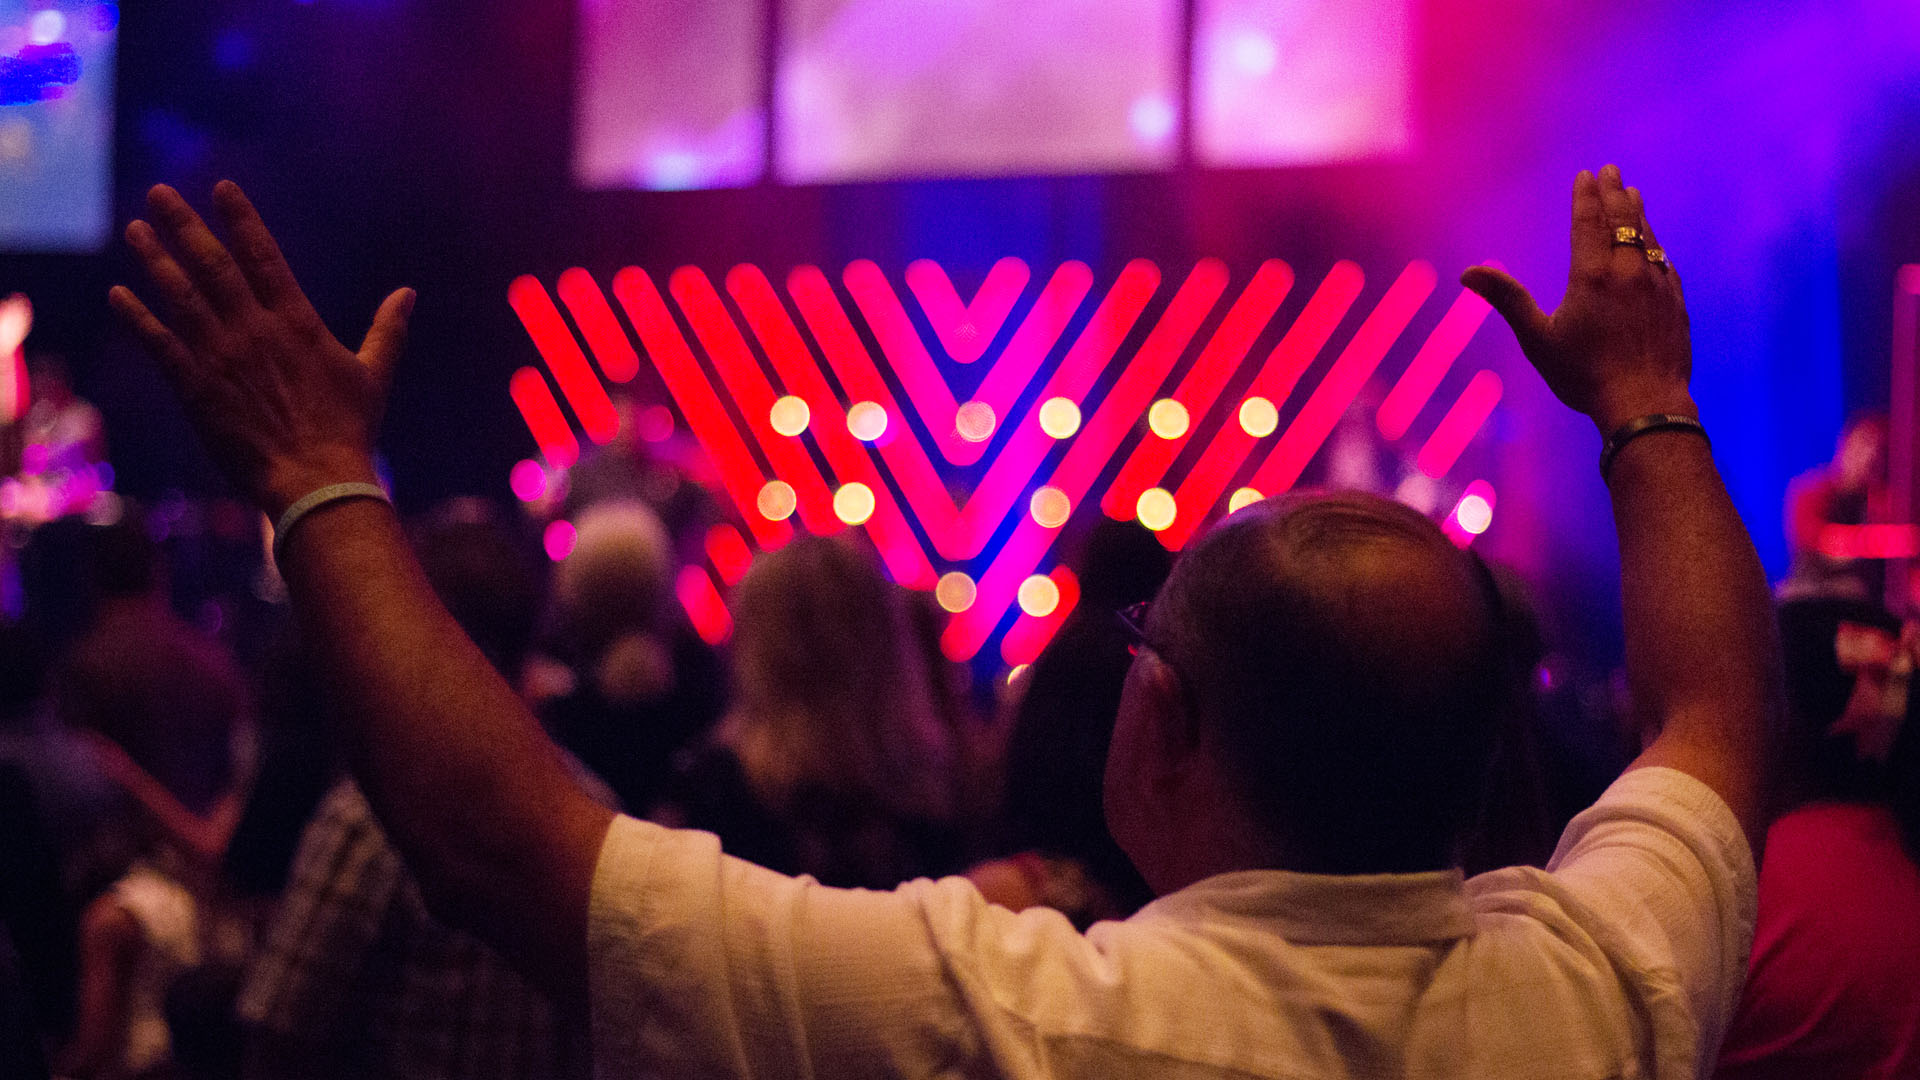 EMPOWER YOUR CHURCH'S SIGNIFICANCE